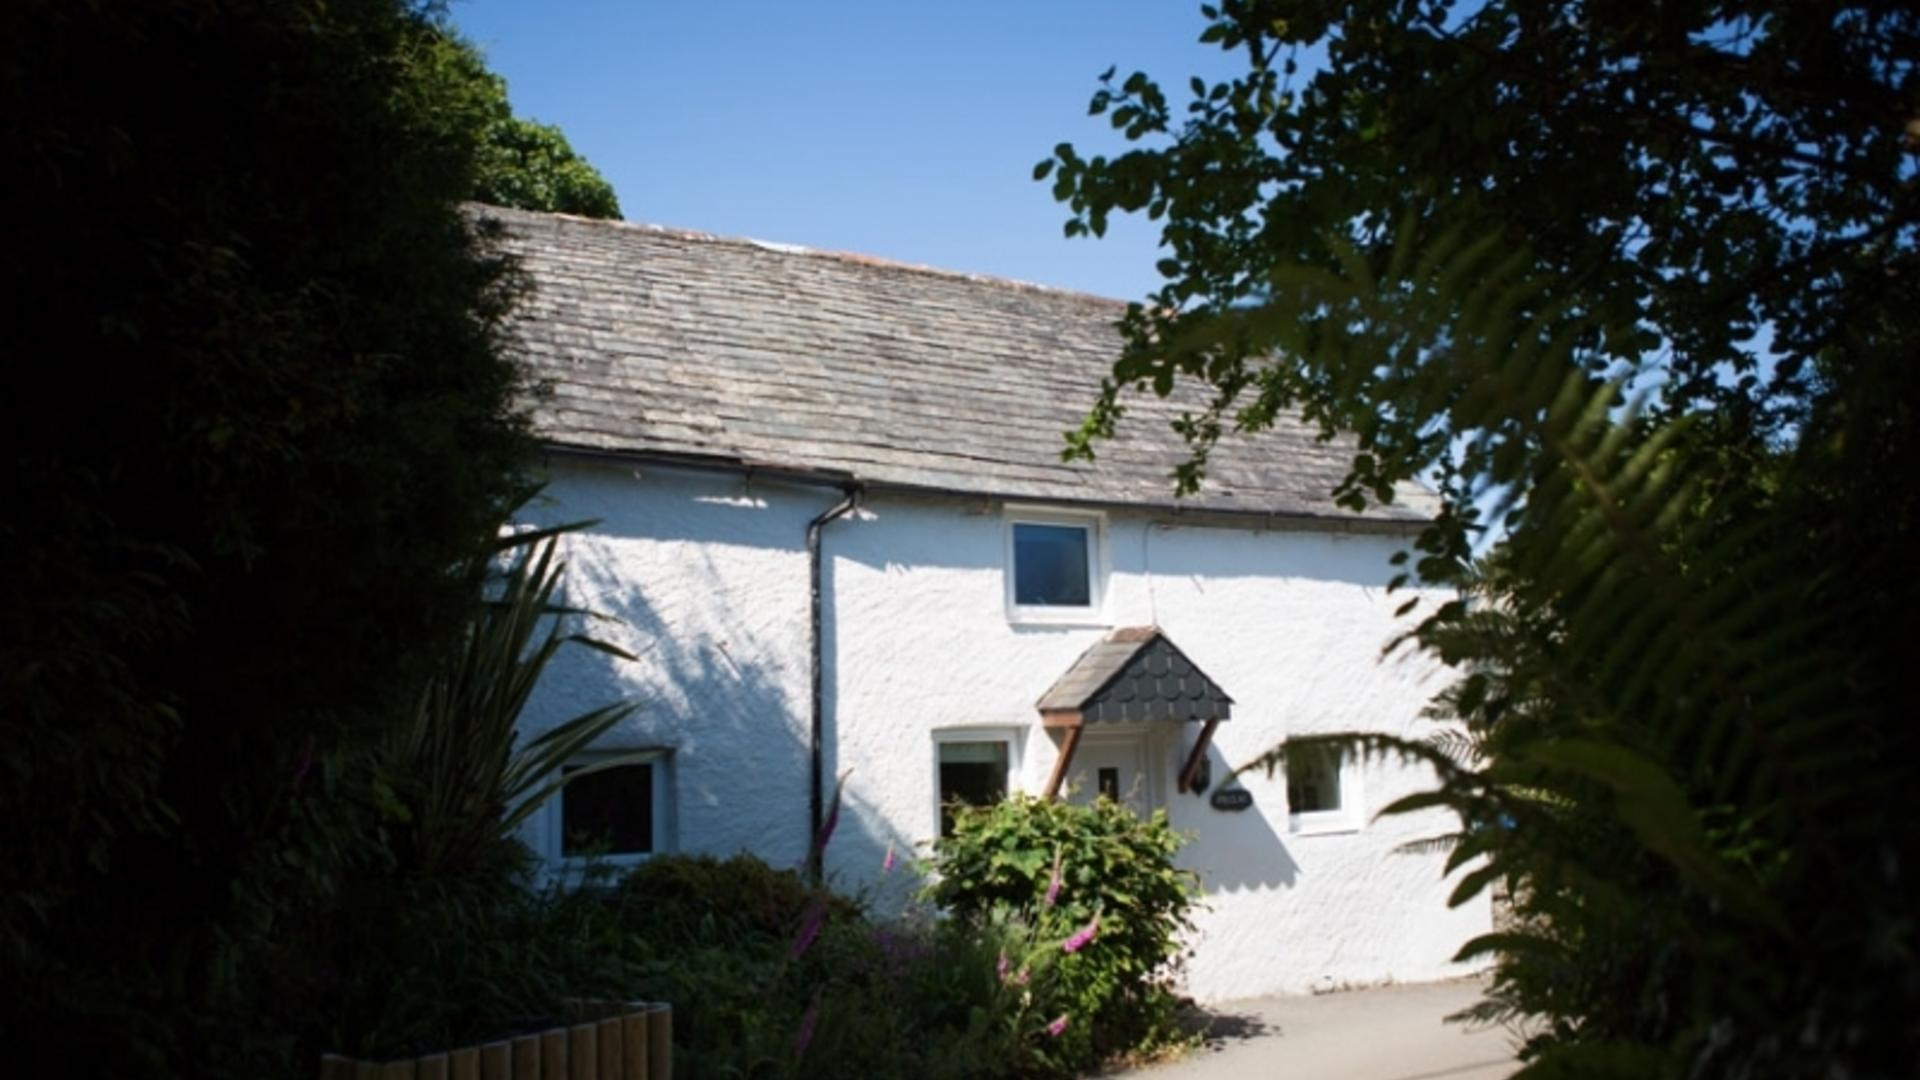 2 Bedroom Private cottage/shared facilities in Cornwall, United Kingdom